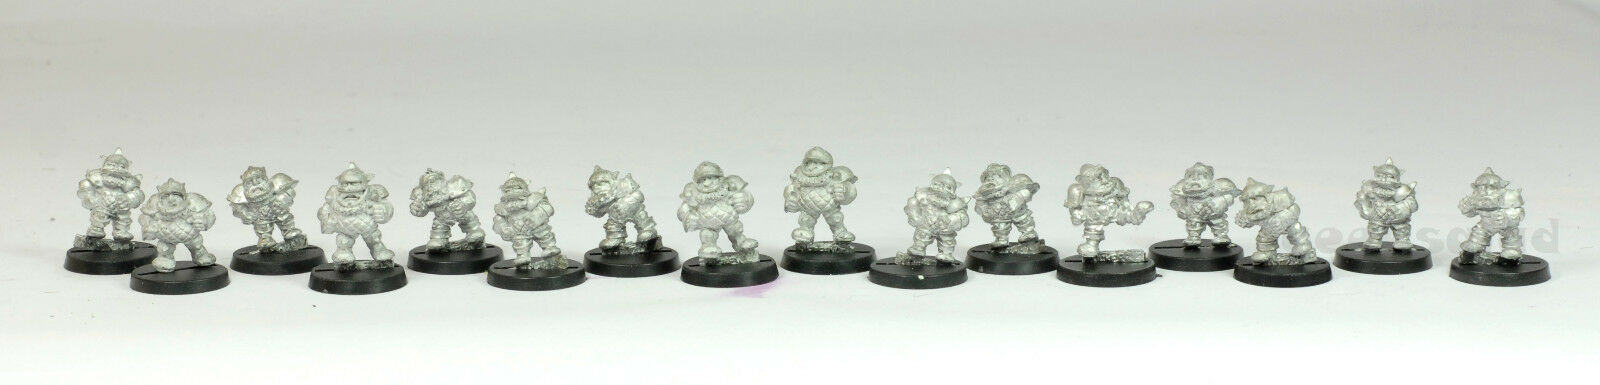 BLOOD BOWL 2nd Edition Grudgebearers Dwarf Giants Classic DWARF TEAM